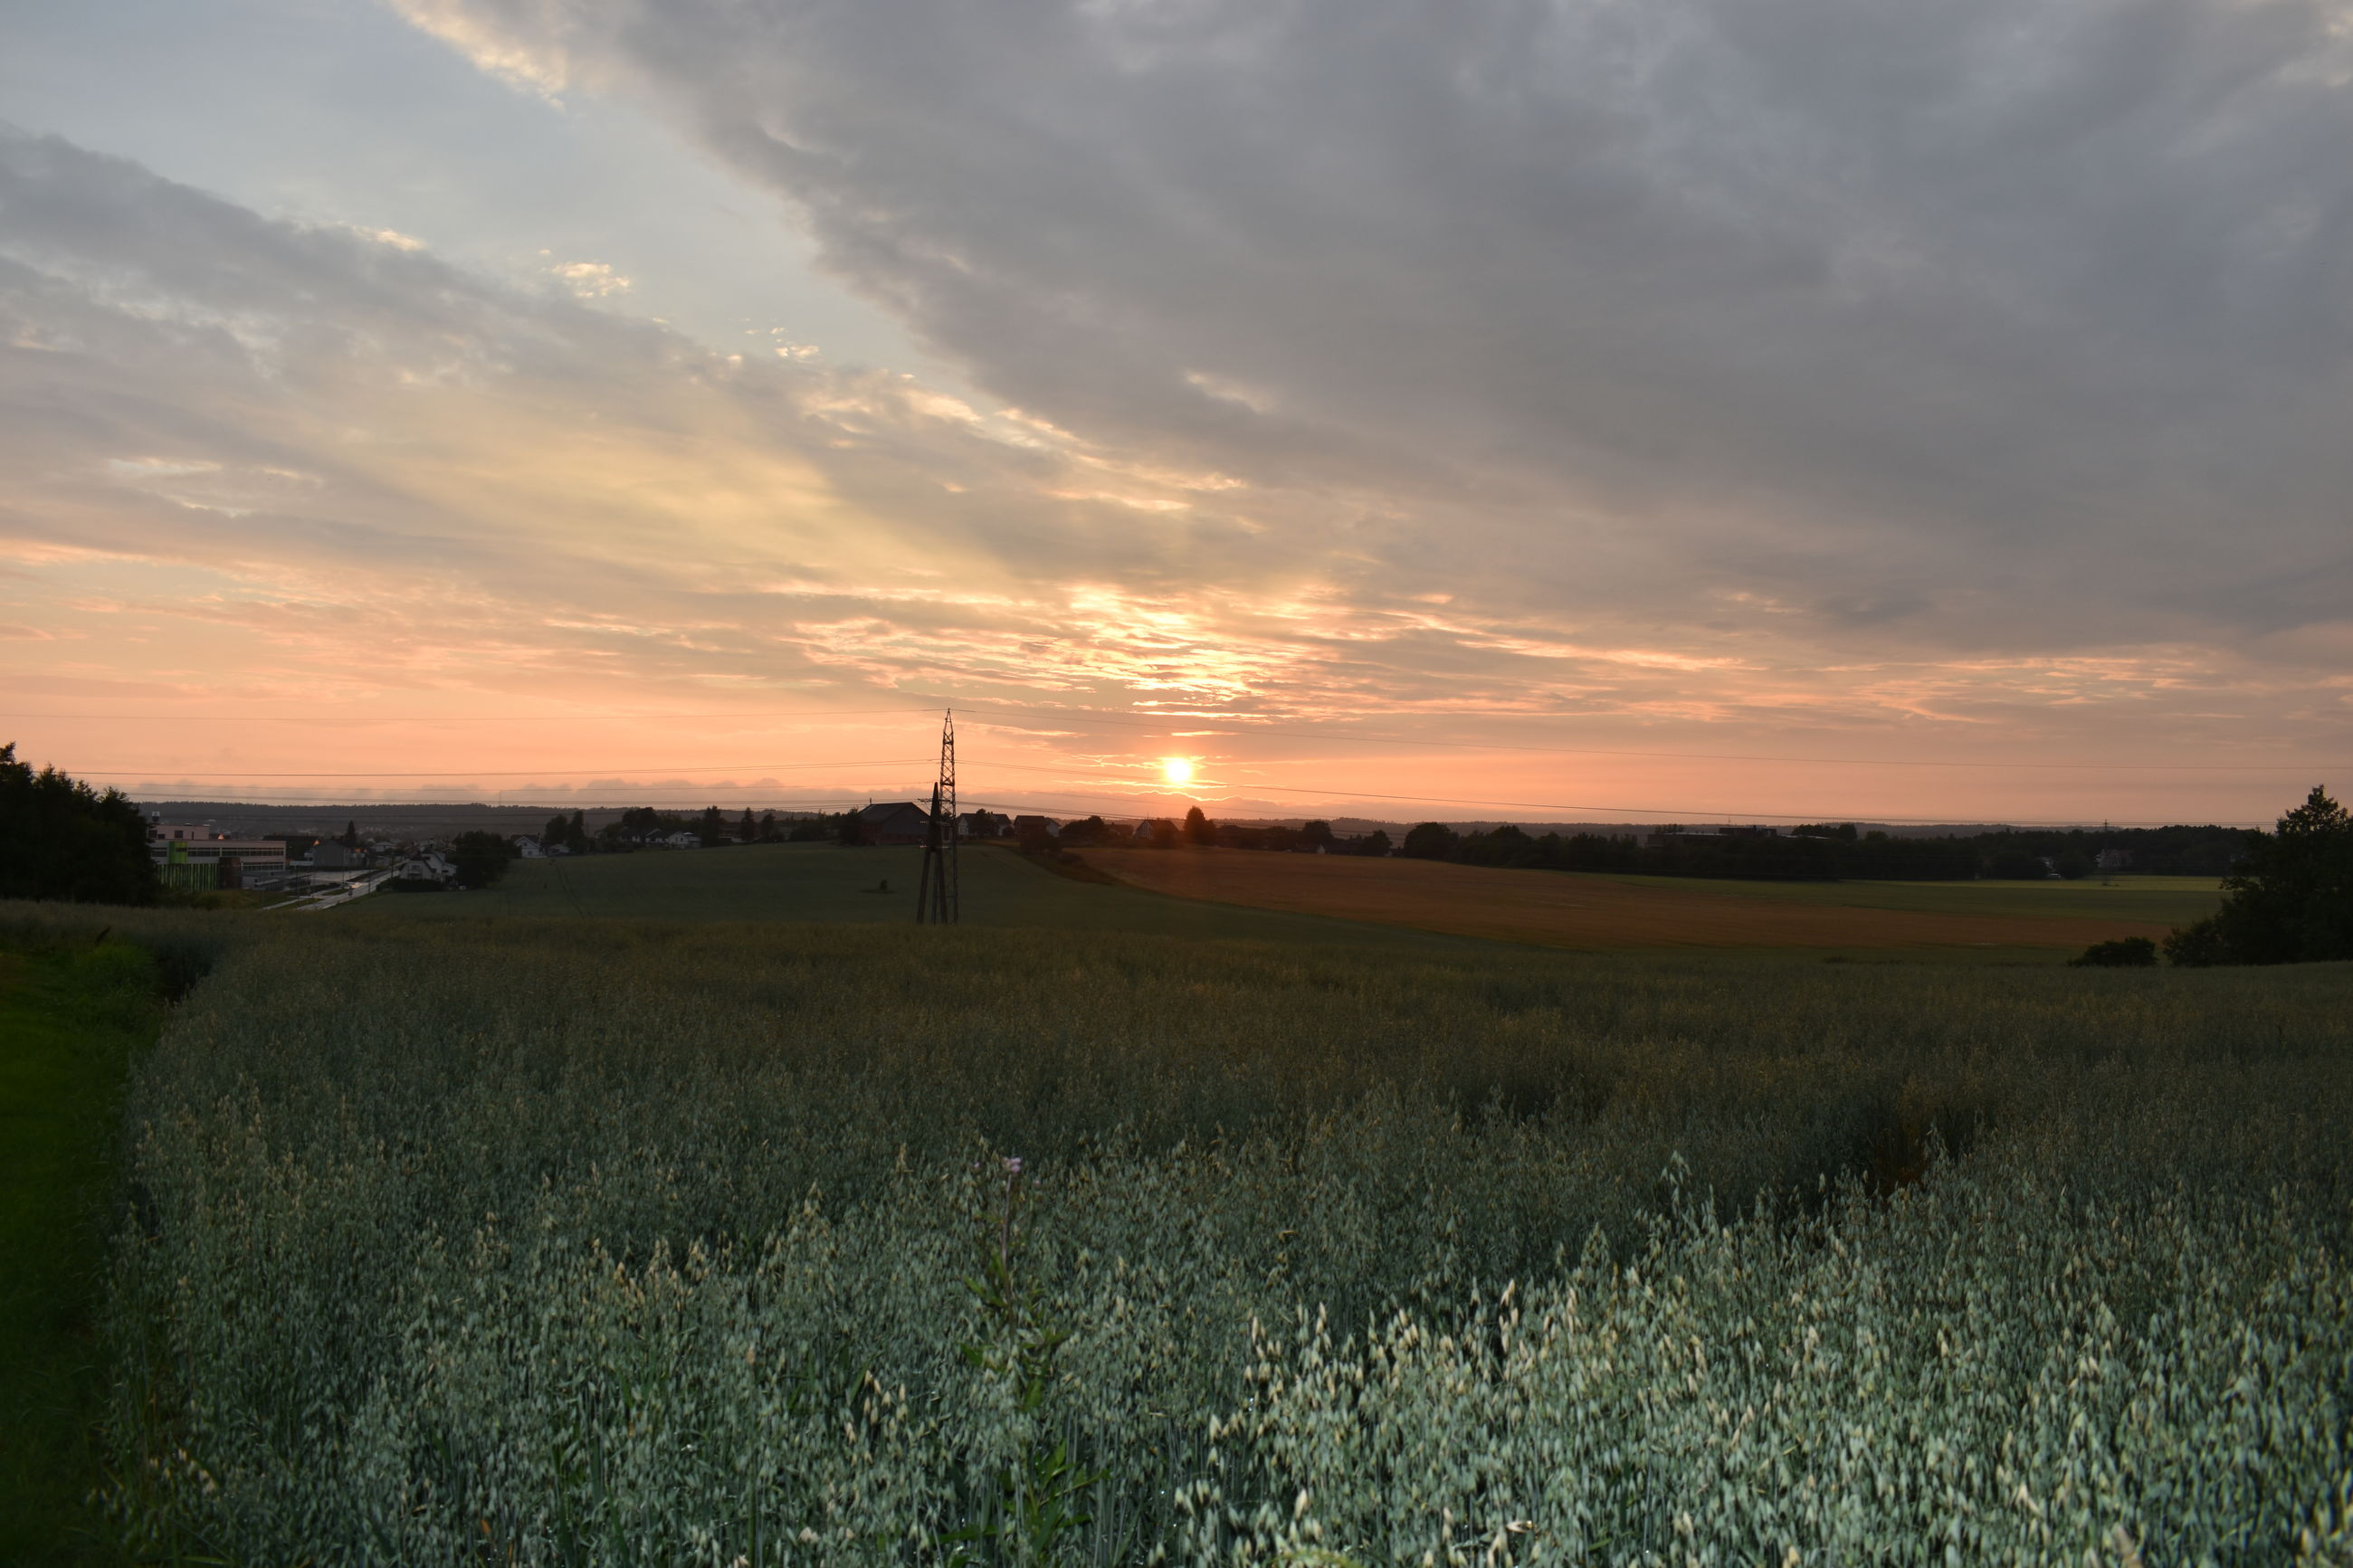 sunset, field, tranquil scene, landscape, sky, tranquility, scenics, beauty in nature, grass, rural scene, nature, cloud - sky, sun, growth, agriculture, idyllic, cloud, plant, sunlight, horizon over land, grassy, orange color, cloudy, outdoors, no people, non-urban scene, sunbeam, remote, non urban scene, green color